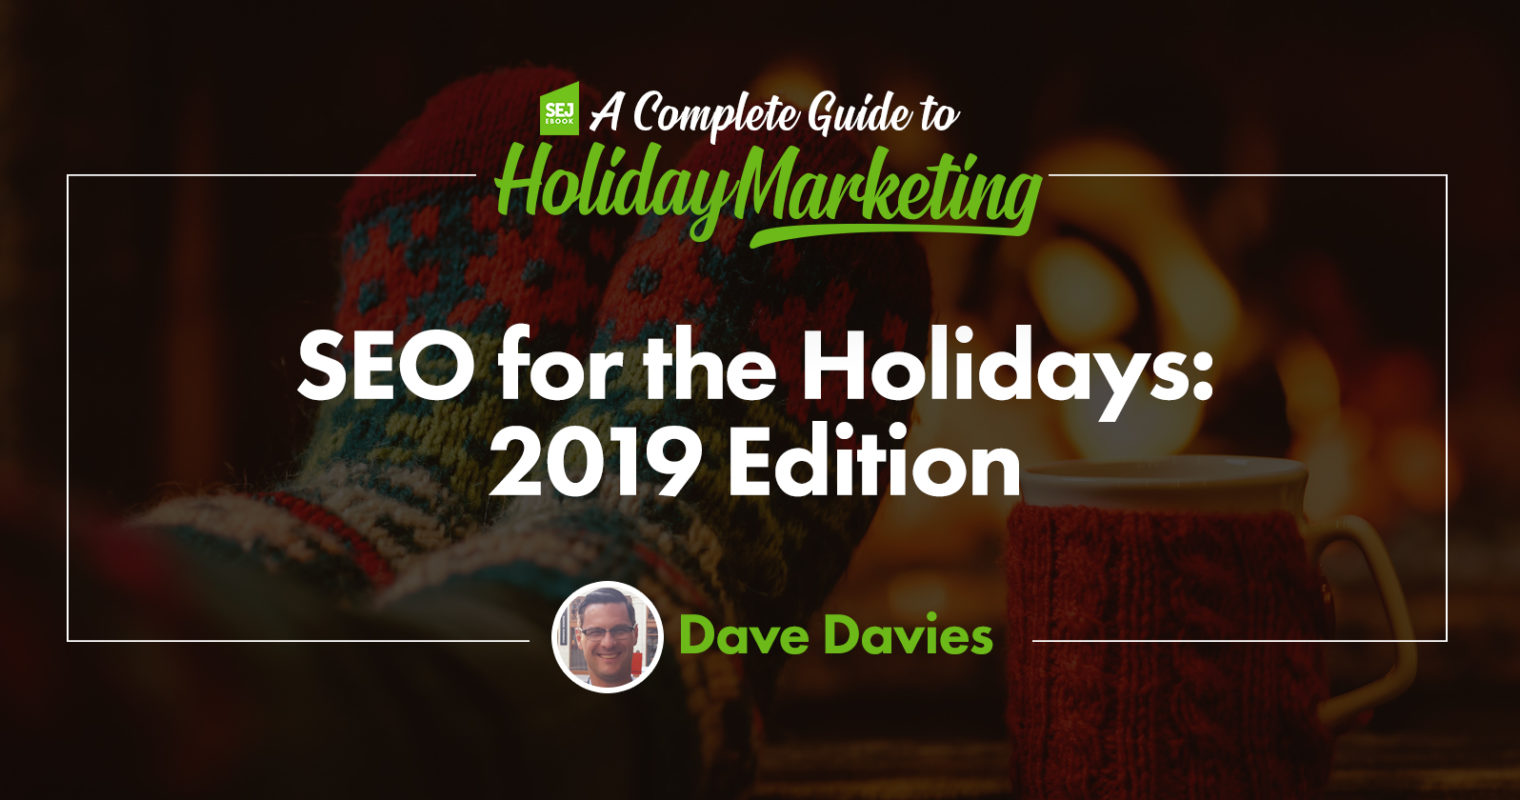 SEO for the Holidays